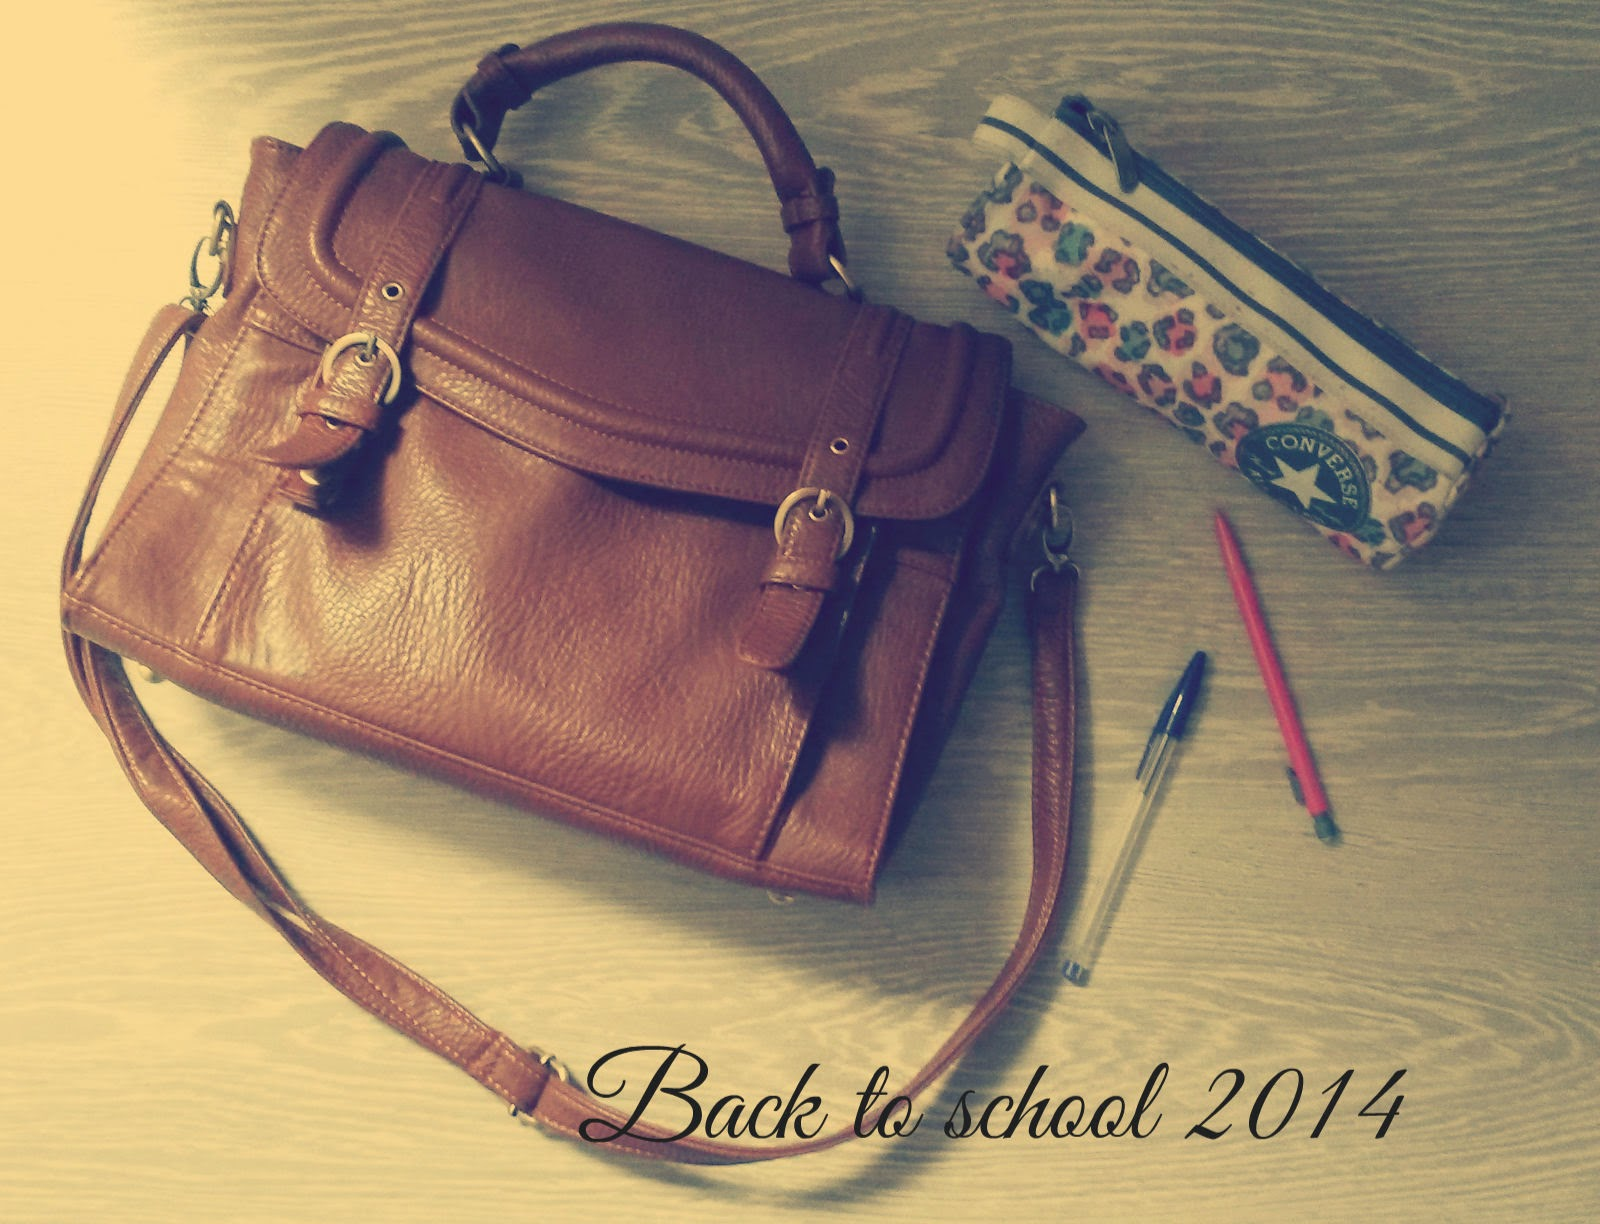 Back to School 2014